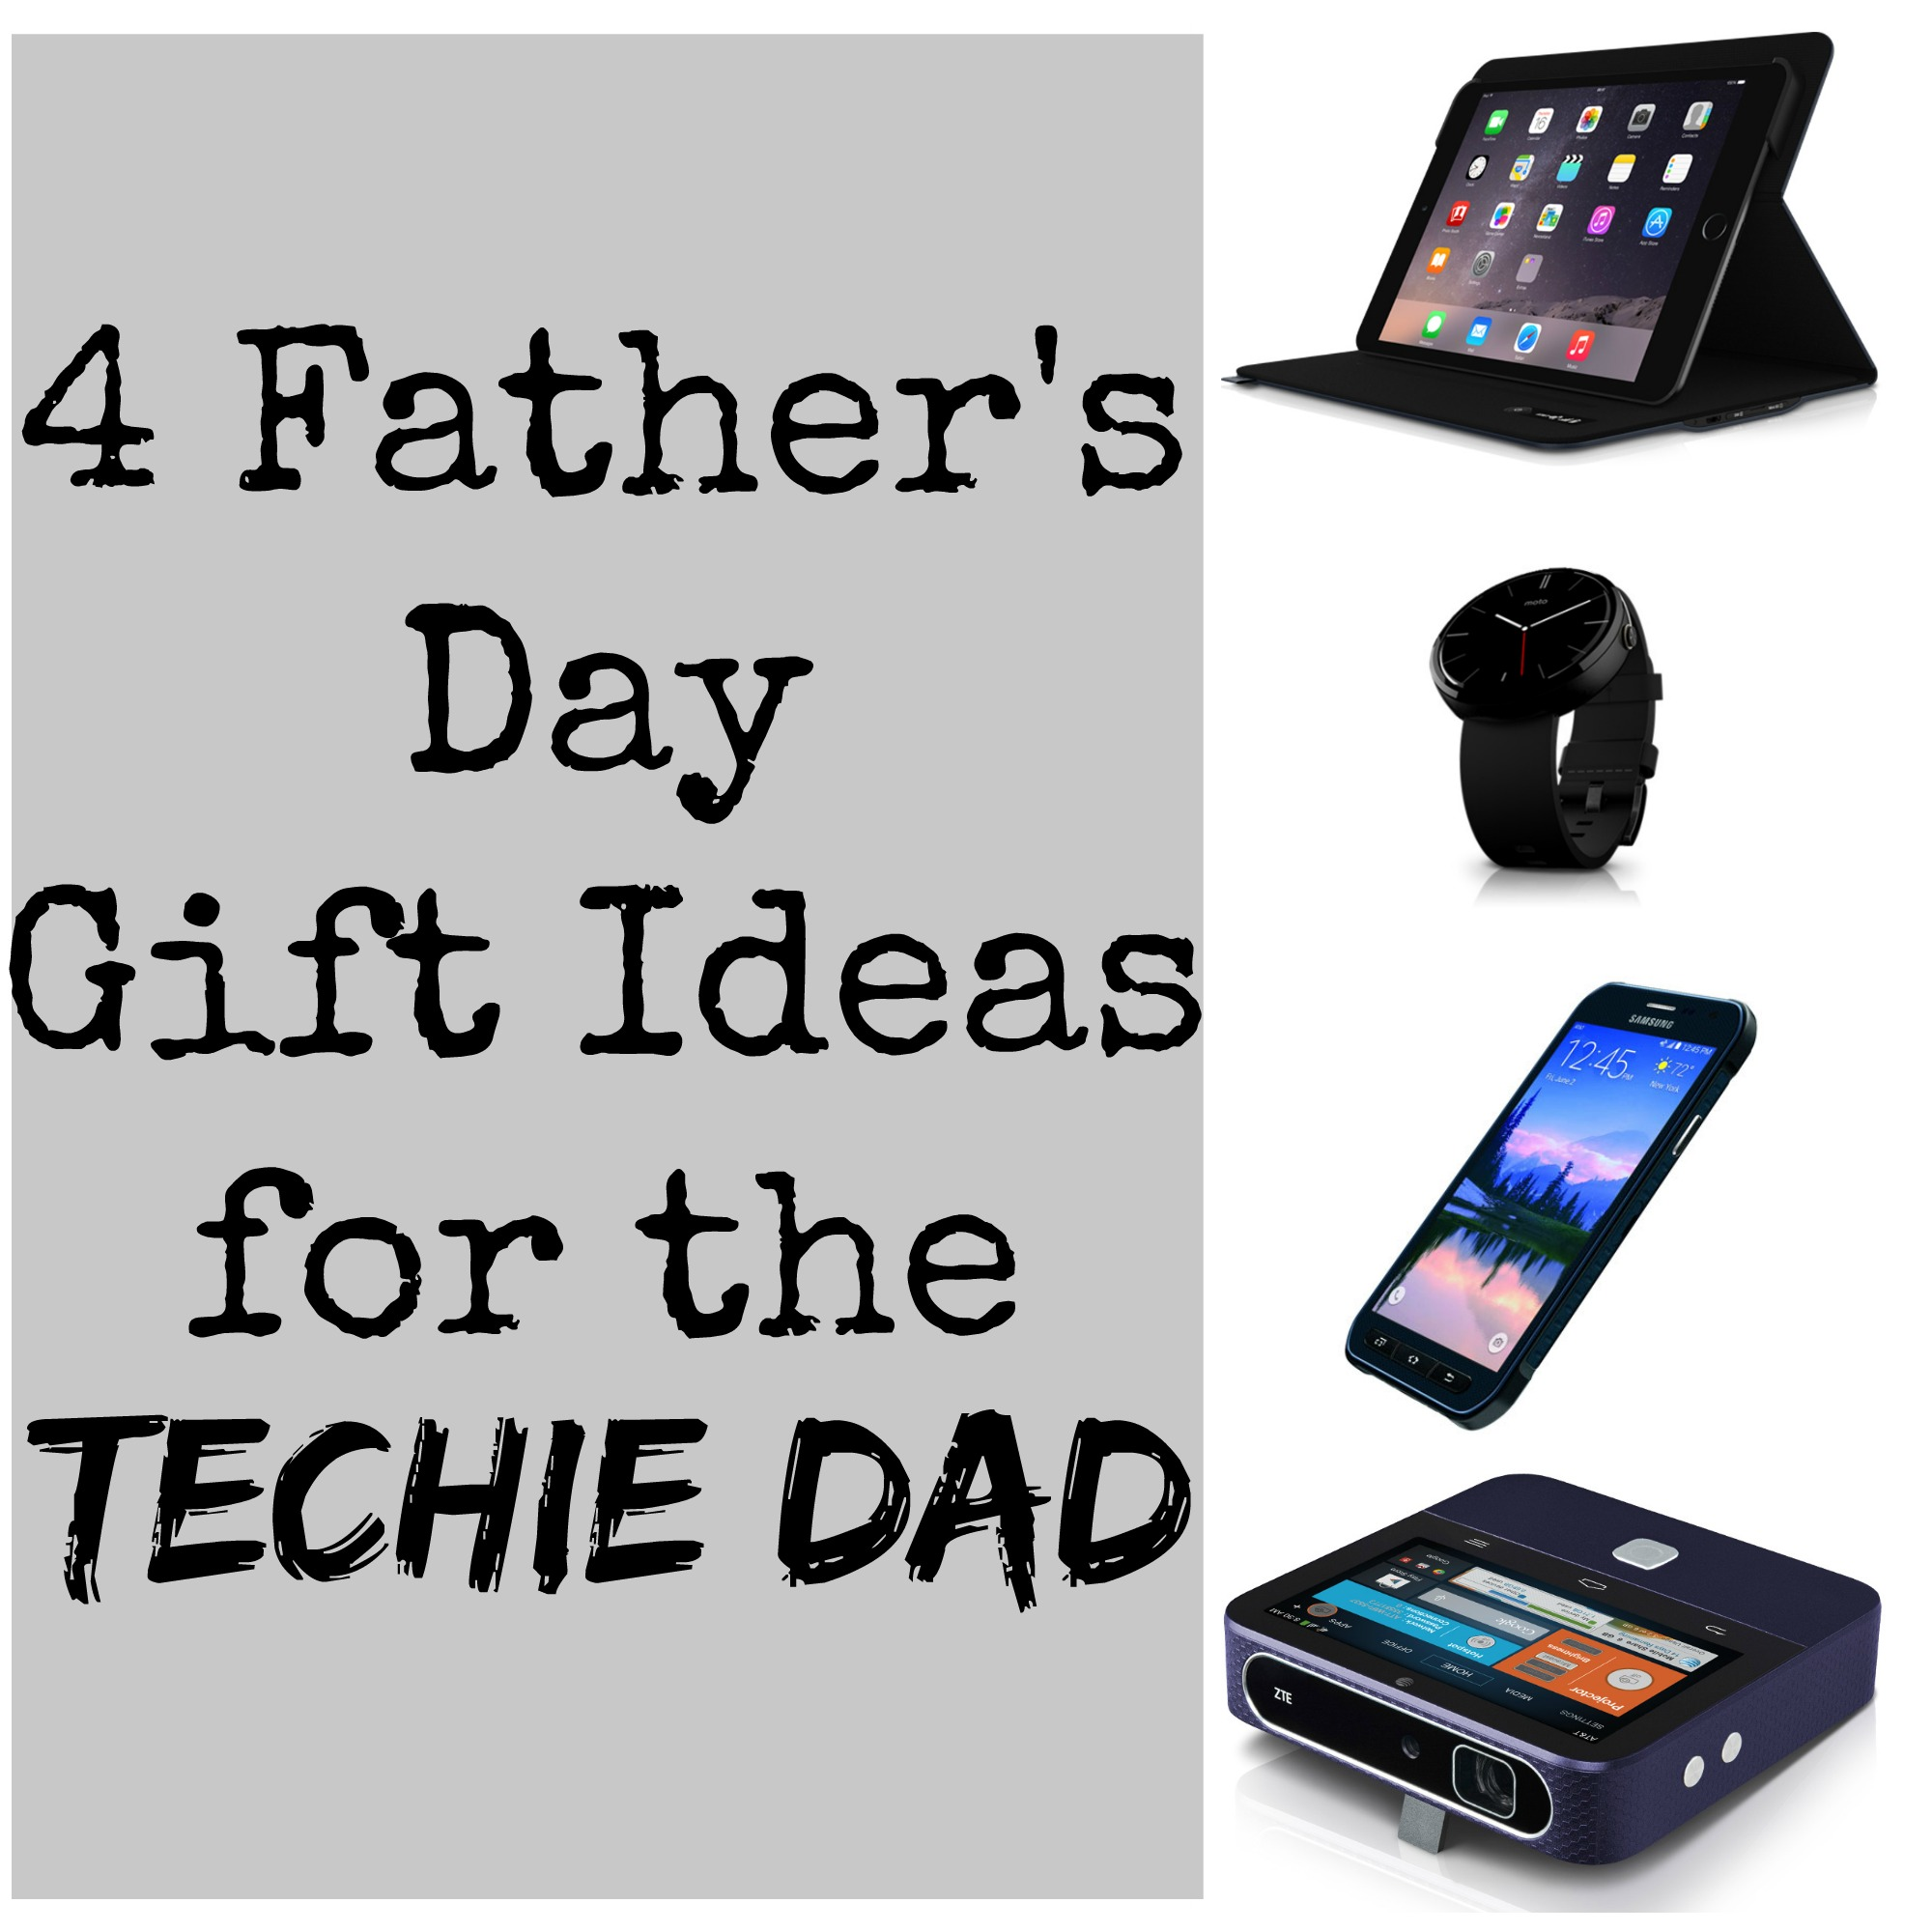 4 Father's Day Gift Ideas for the Techie Dad | Mommypalooza